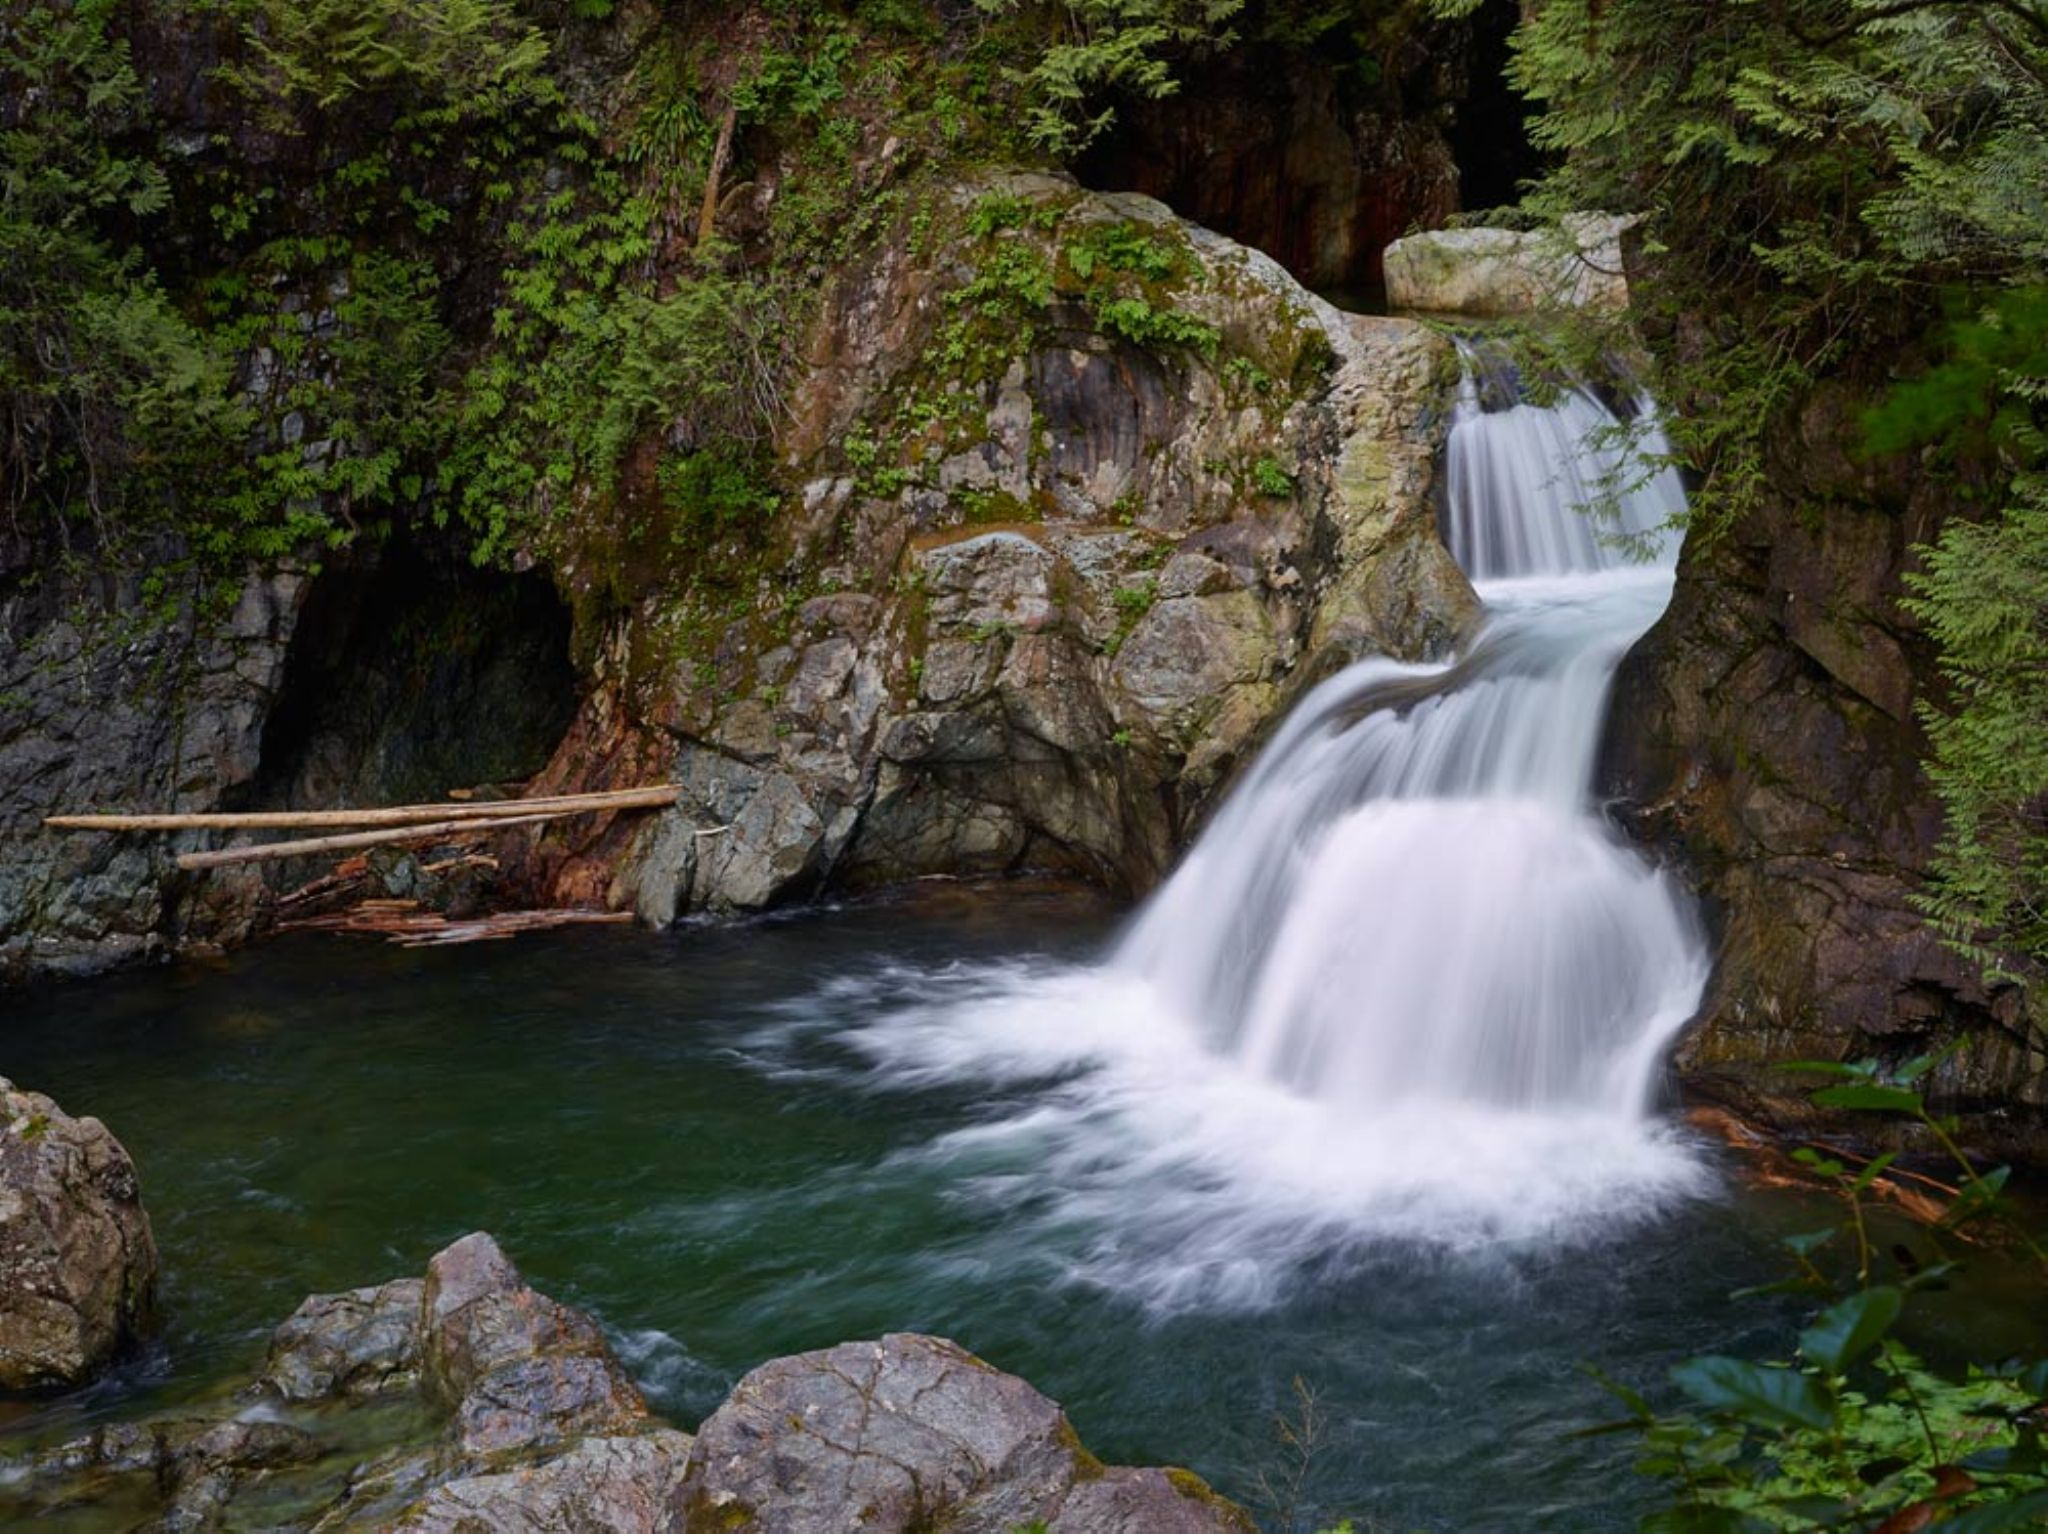 Twin Falls #2, Lynn Valley by MichaelEaston